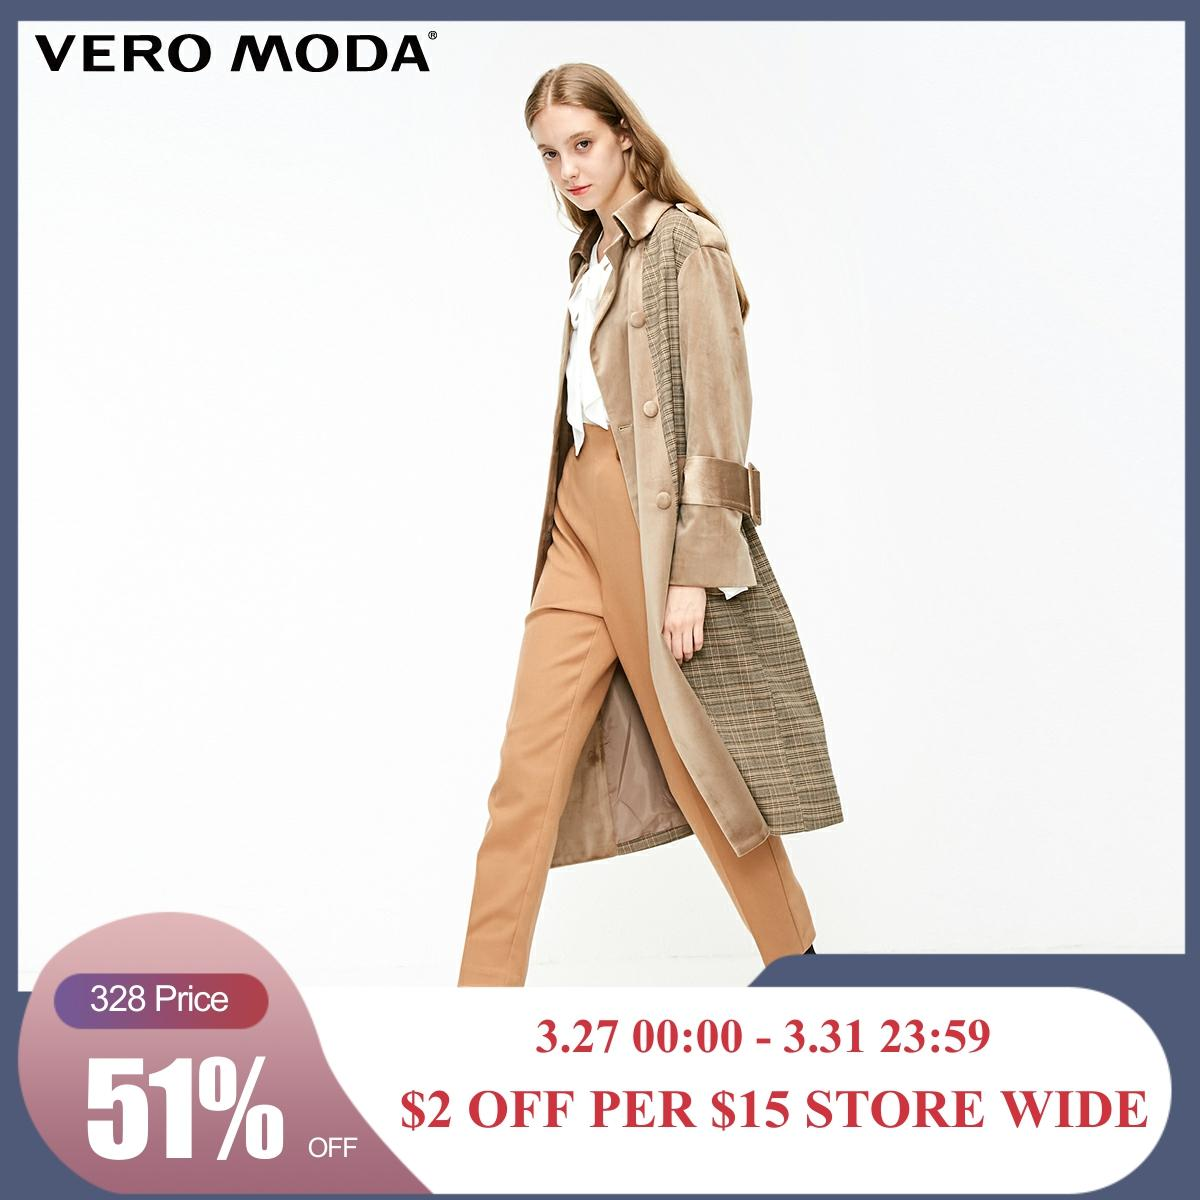 Vero Moda Women's Velvet Plaid Double-Breasted Coat Trench Coat | 318409507